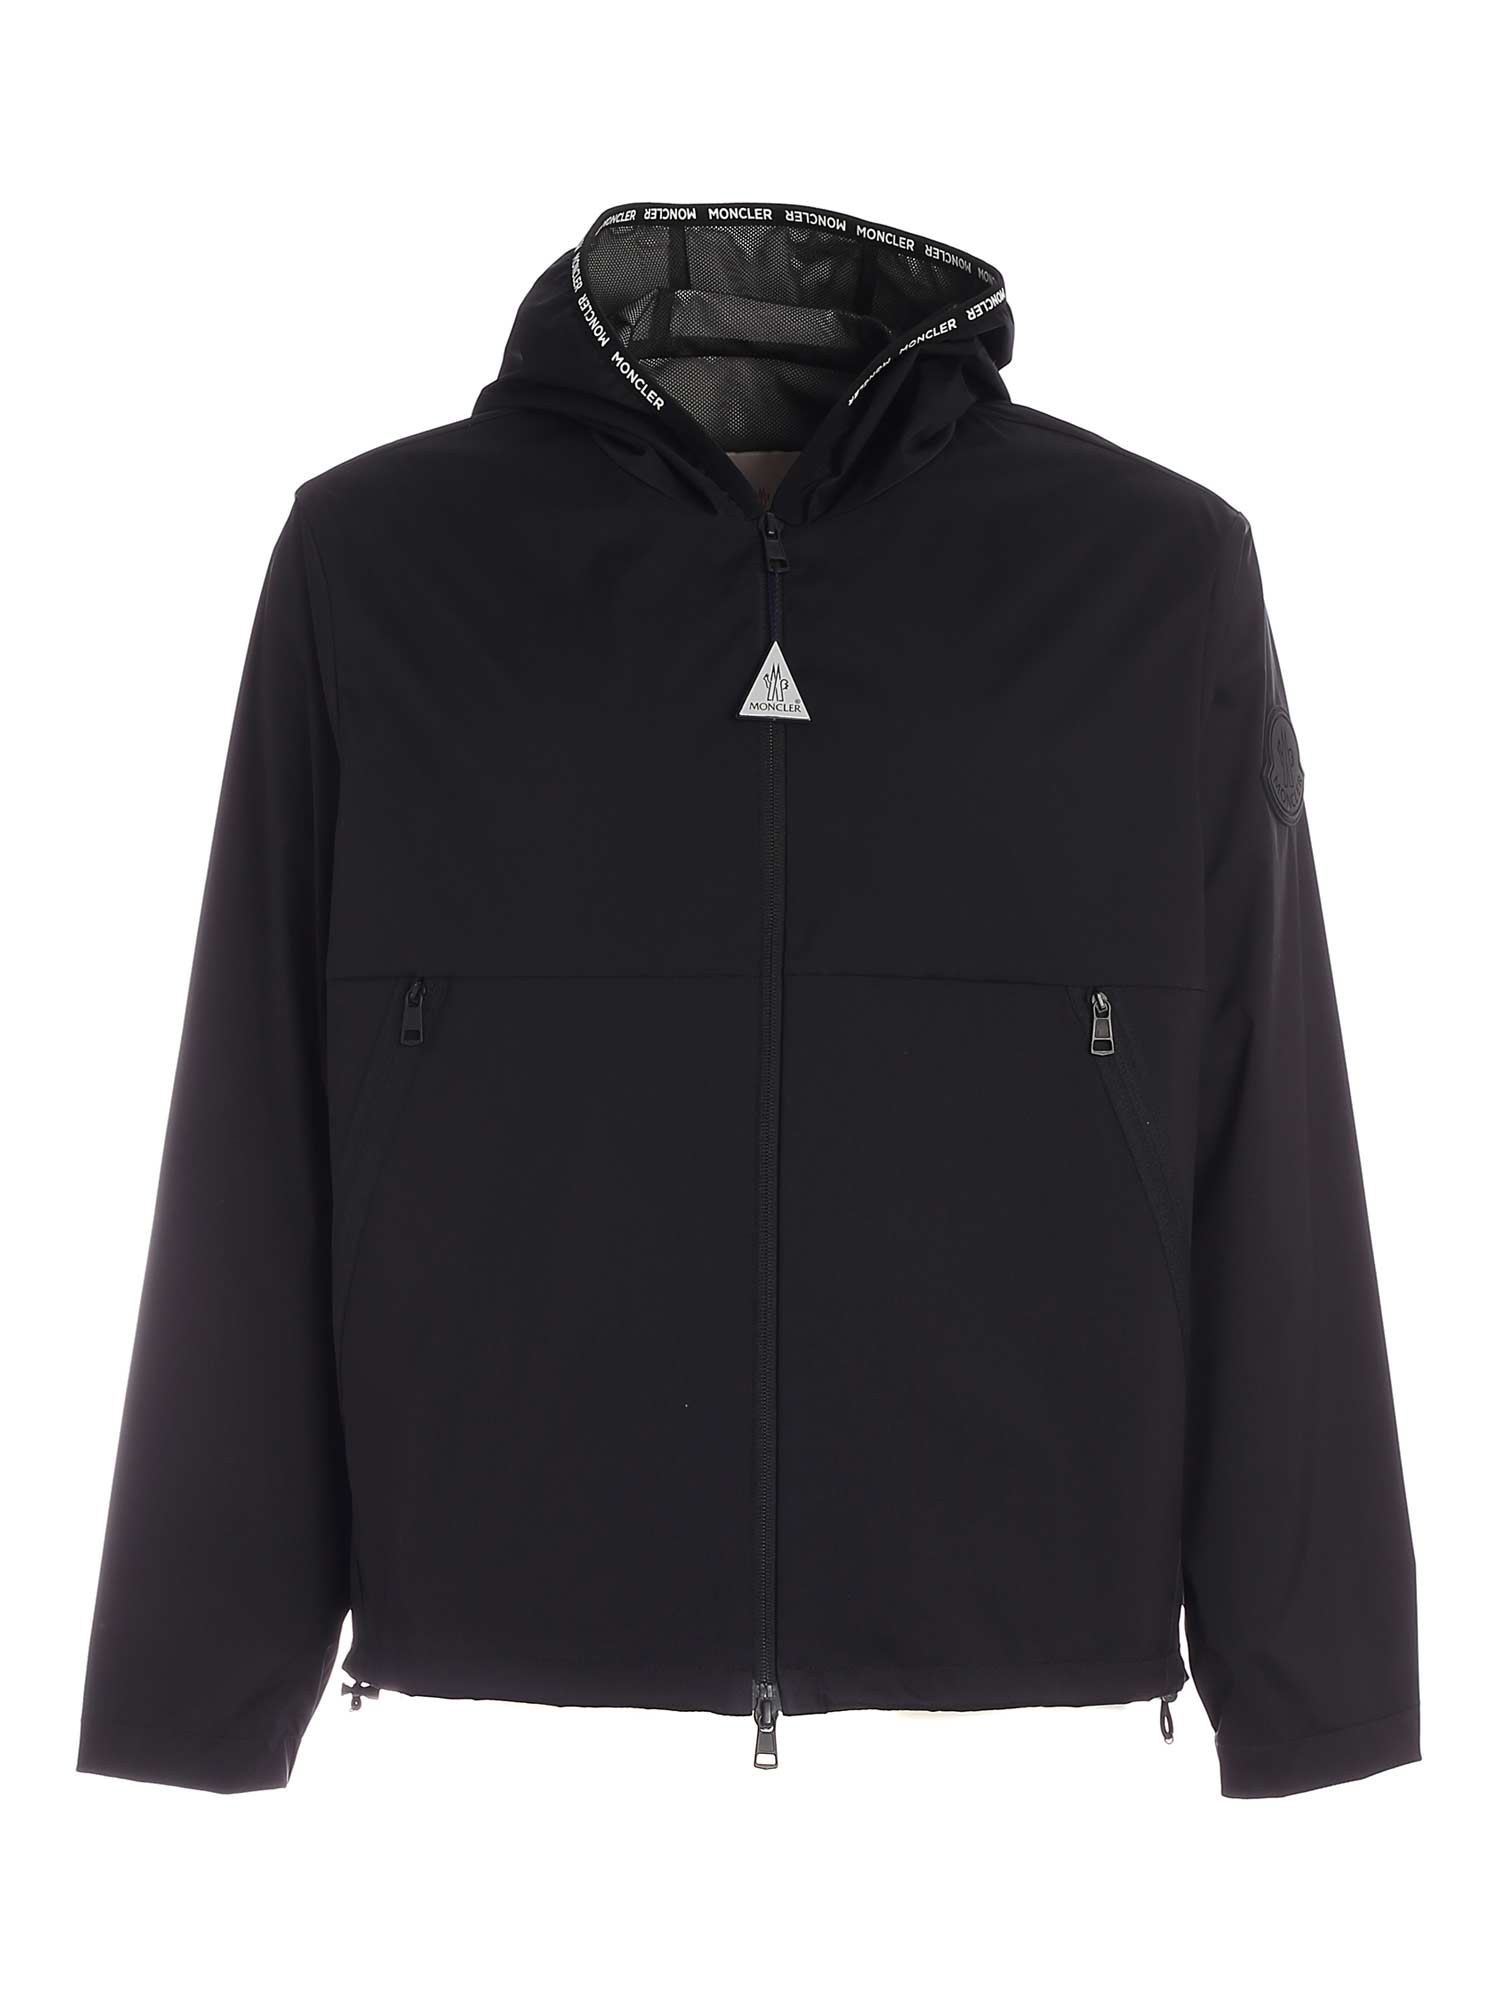 Moncler Linings CHARDON JACKET IN BLACK